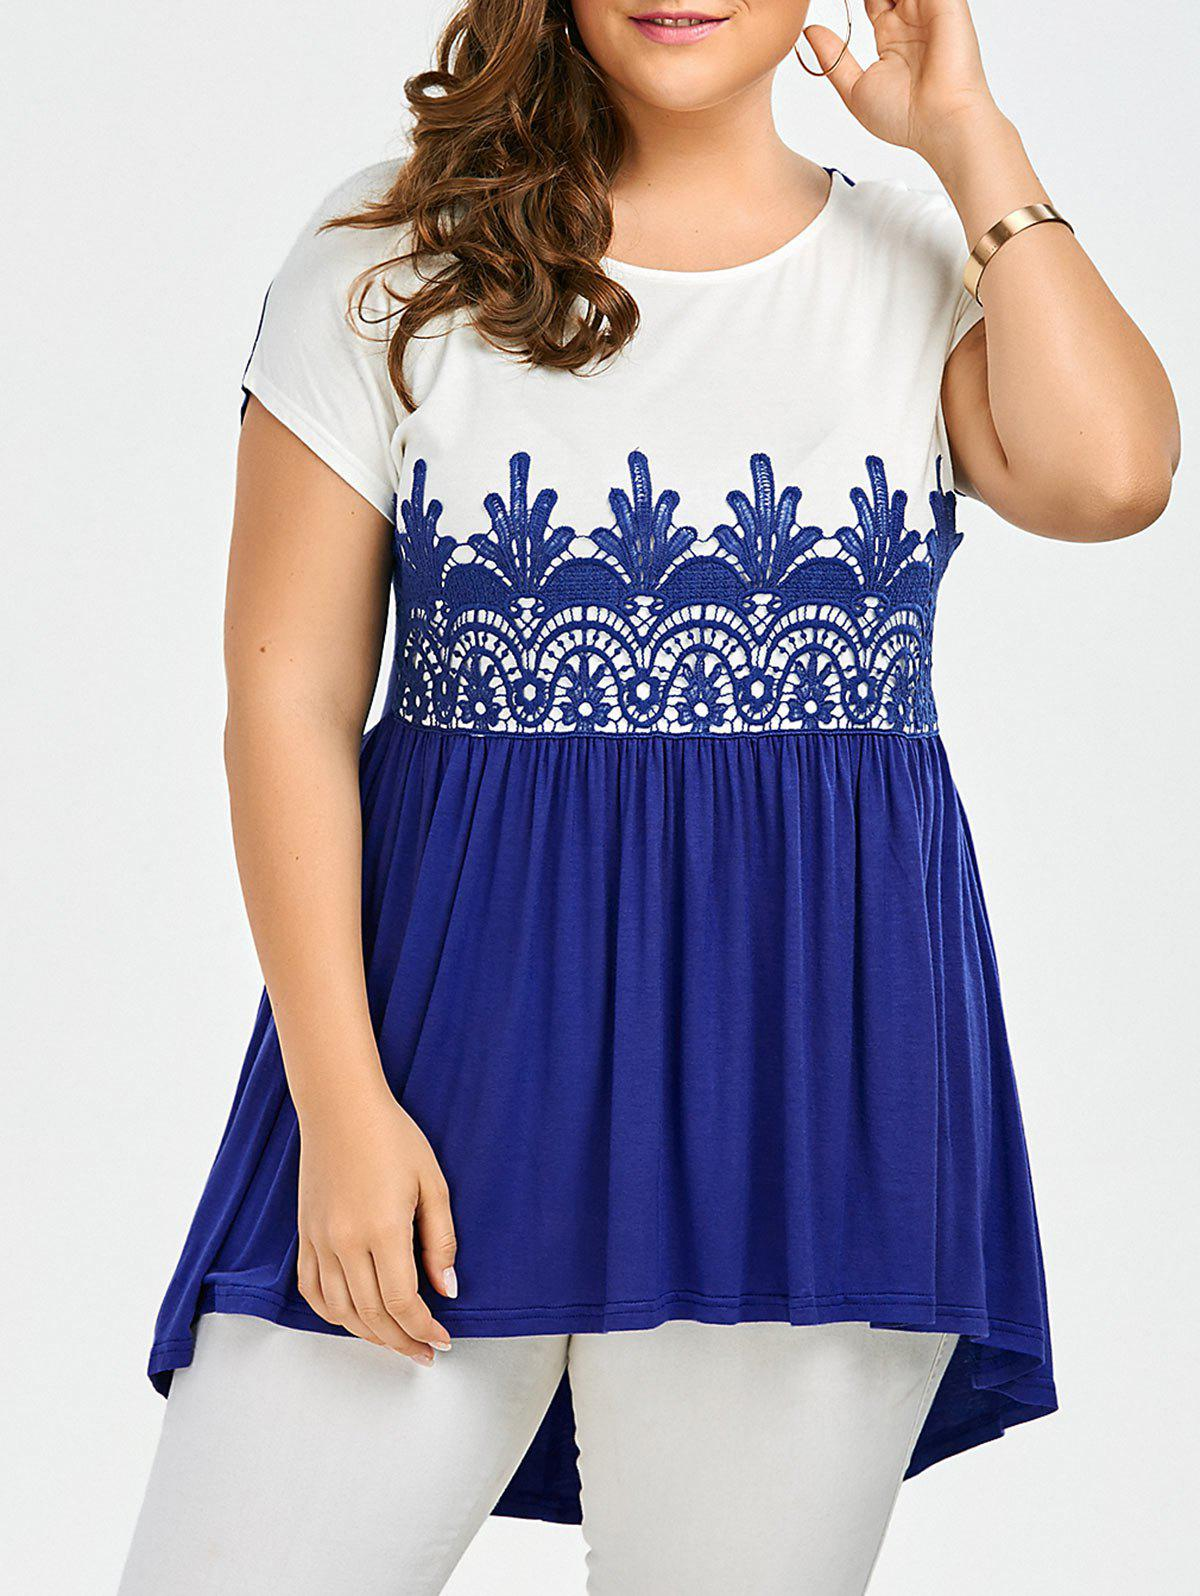 Lace Panel Plus Size High Low TopWOMEN<br><br>Size: 4XL; Color: BLUE AND WHITE; Material: Rayon,Spandex; Shirt Length: Regular; Sleeve Length: Short; Collar: Round Neck; Style: Casual; Season: Summer; Embellishment: Lace; Pattern Type: Patchwork; Elasticity: Elastic; Weight: 0.3200kg; Package Contents: 1 x Top;